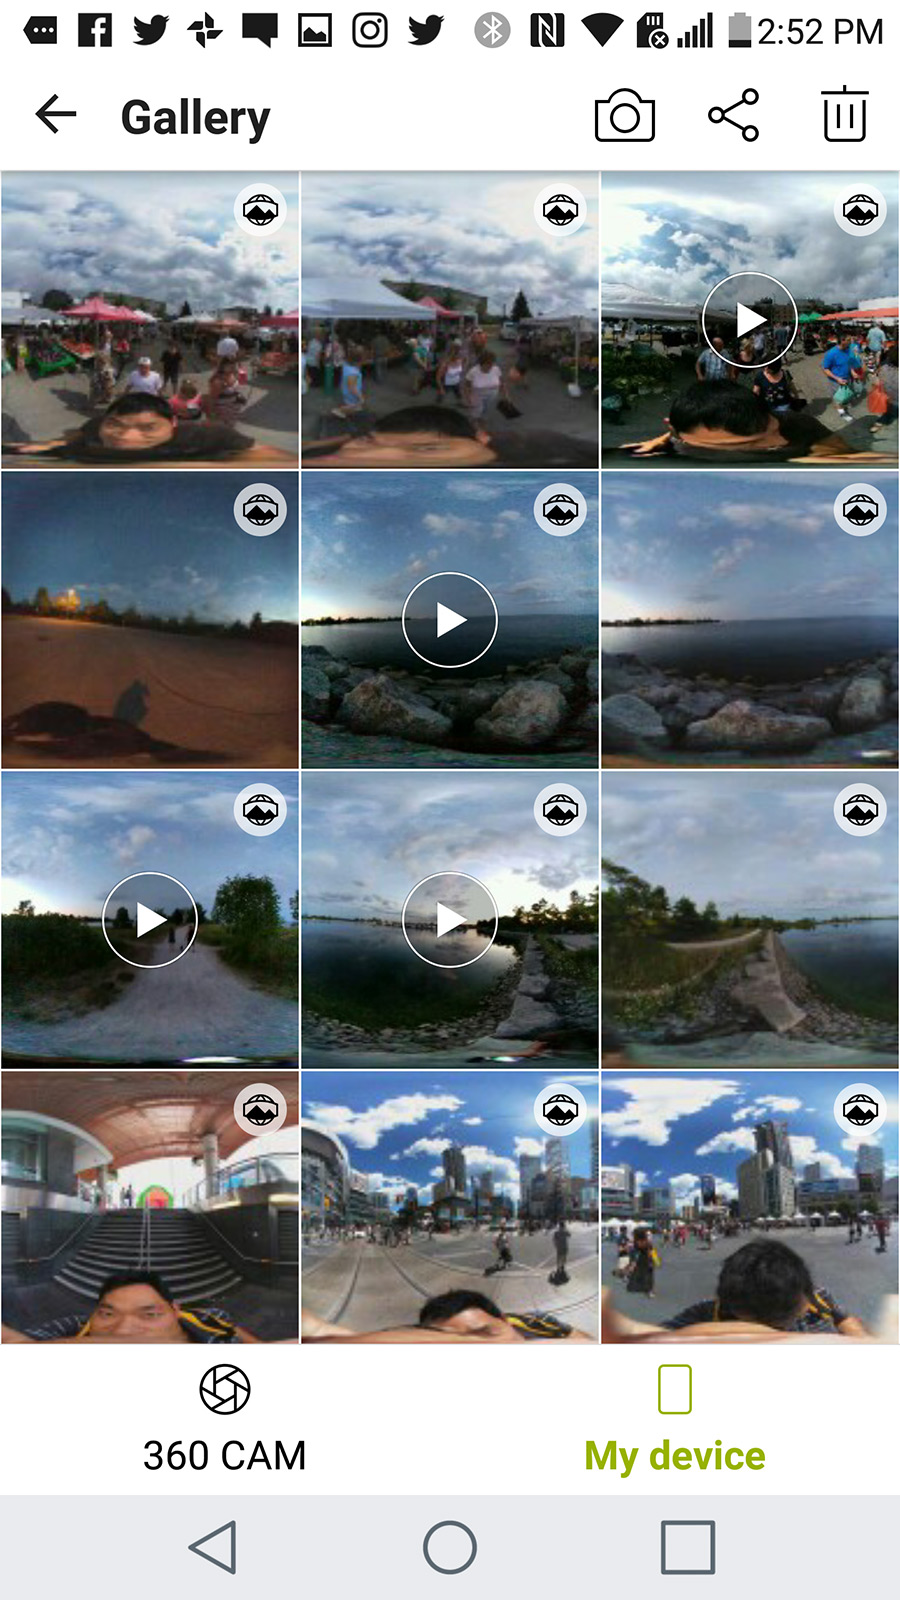 All the 360 photos and videos on your device.